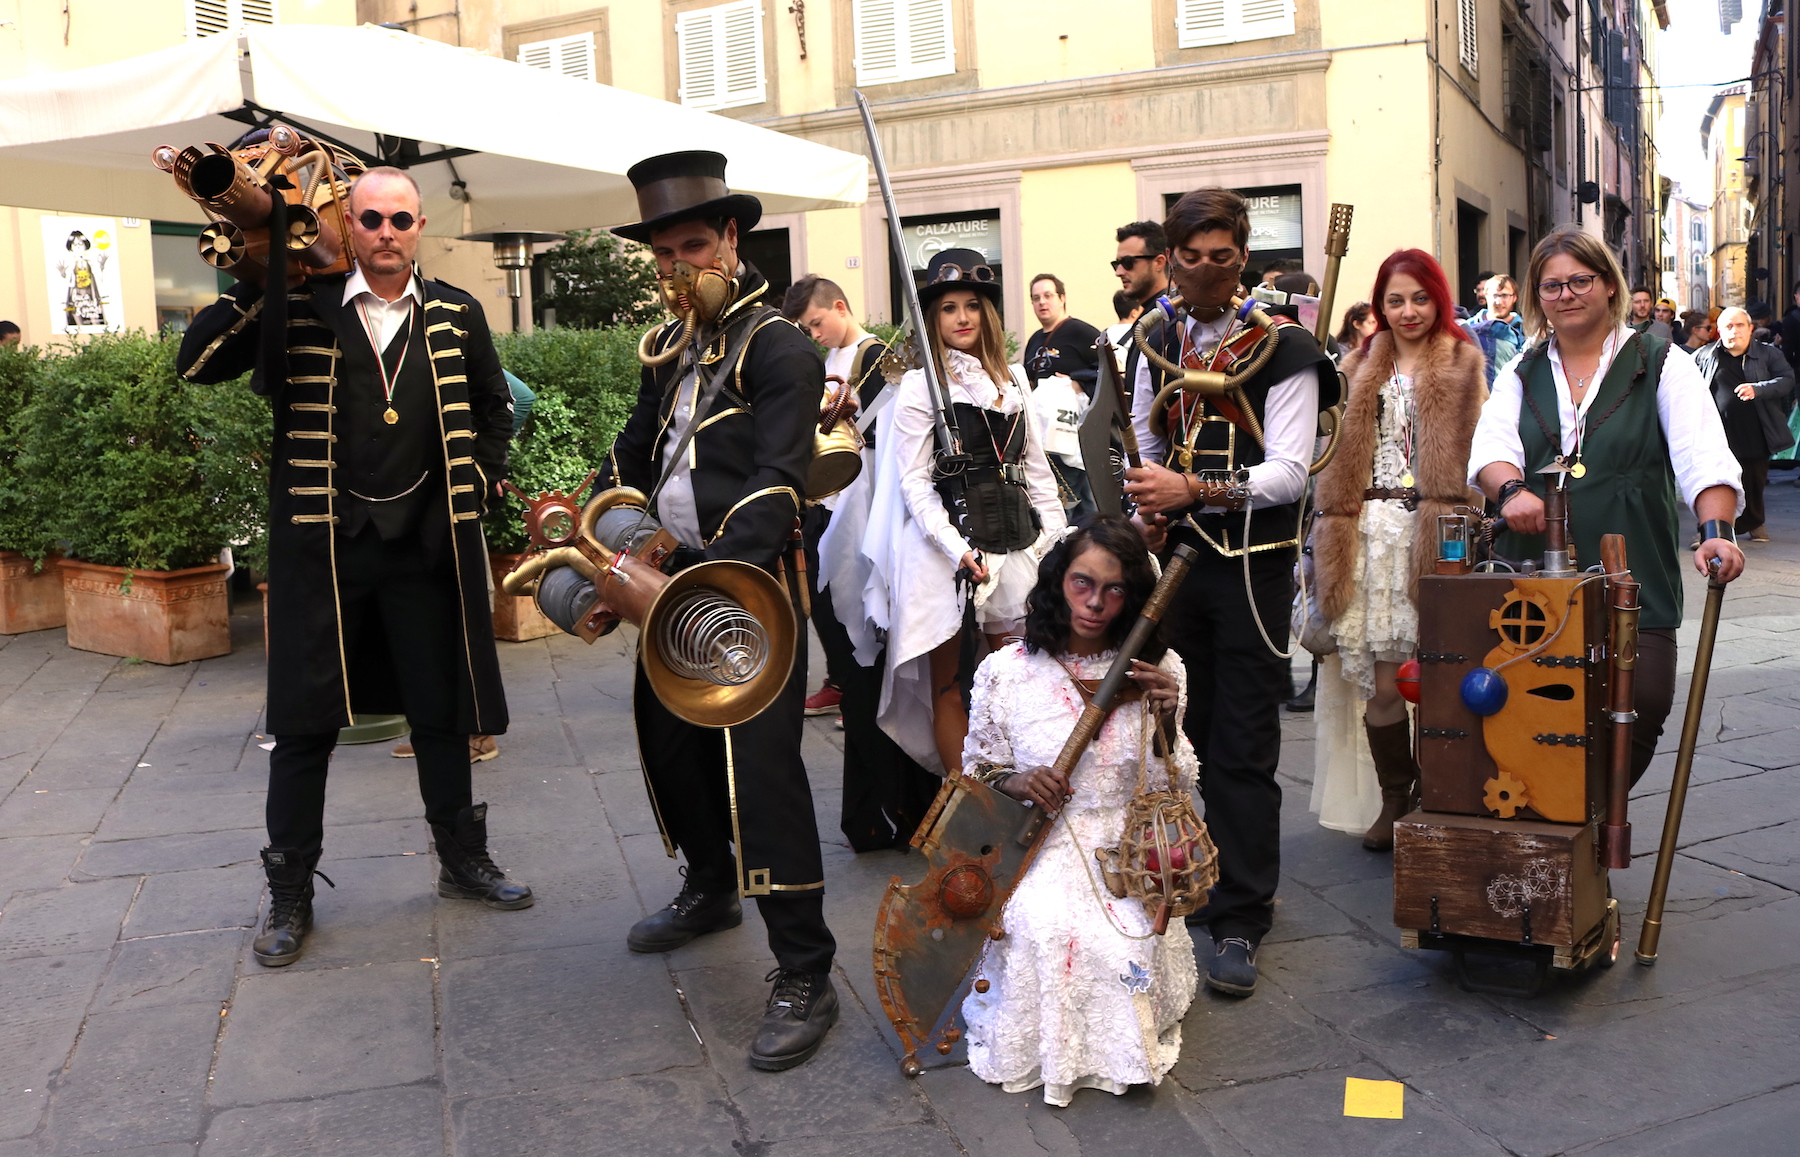 Lucca 2016: bellissimo gruppo di cosplayer Steampunk